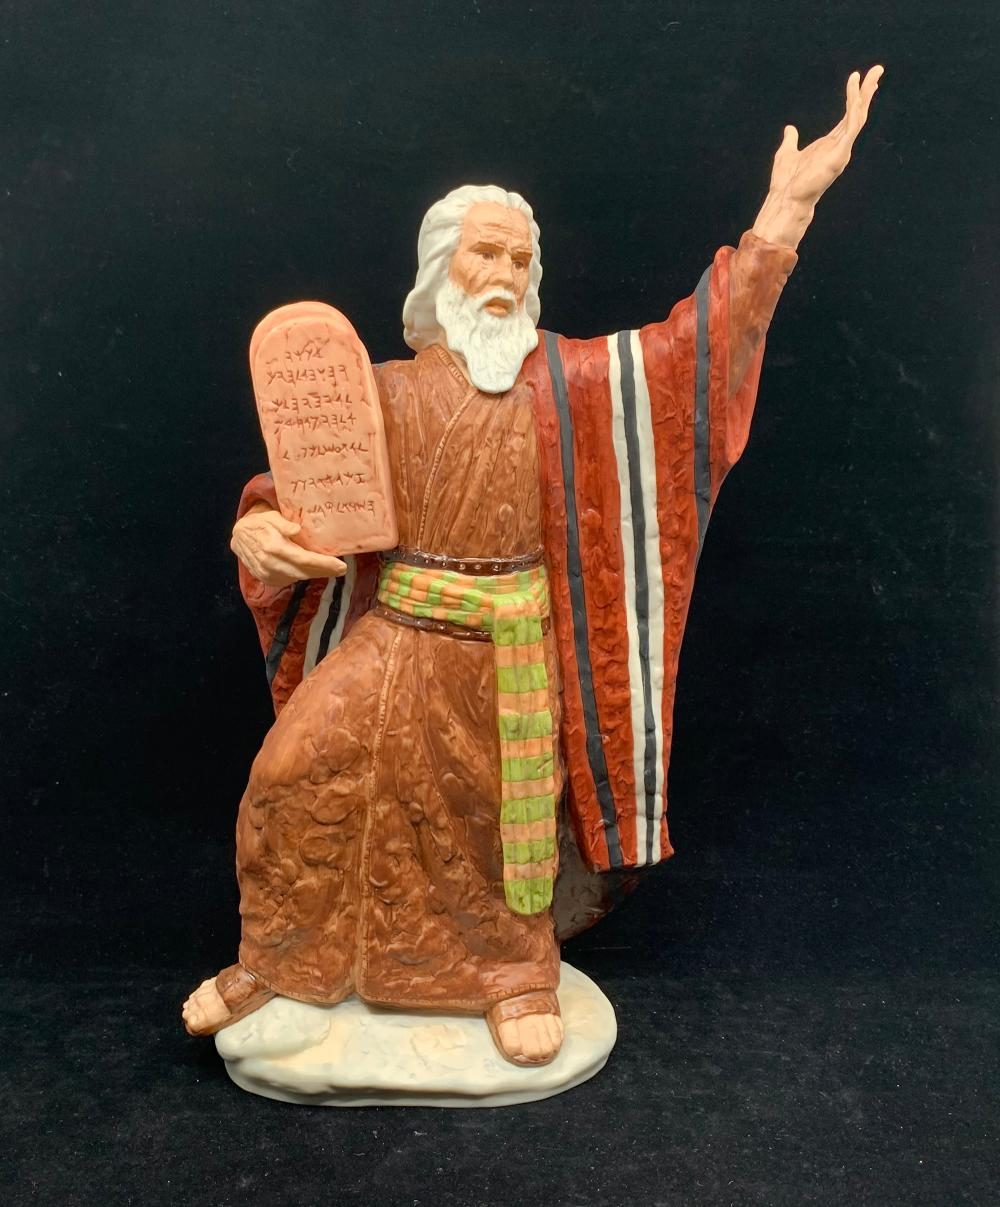 Goebel Crafts, Laszlo Ispanky, Limited Edition Moses with the Ten Commandments